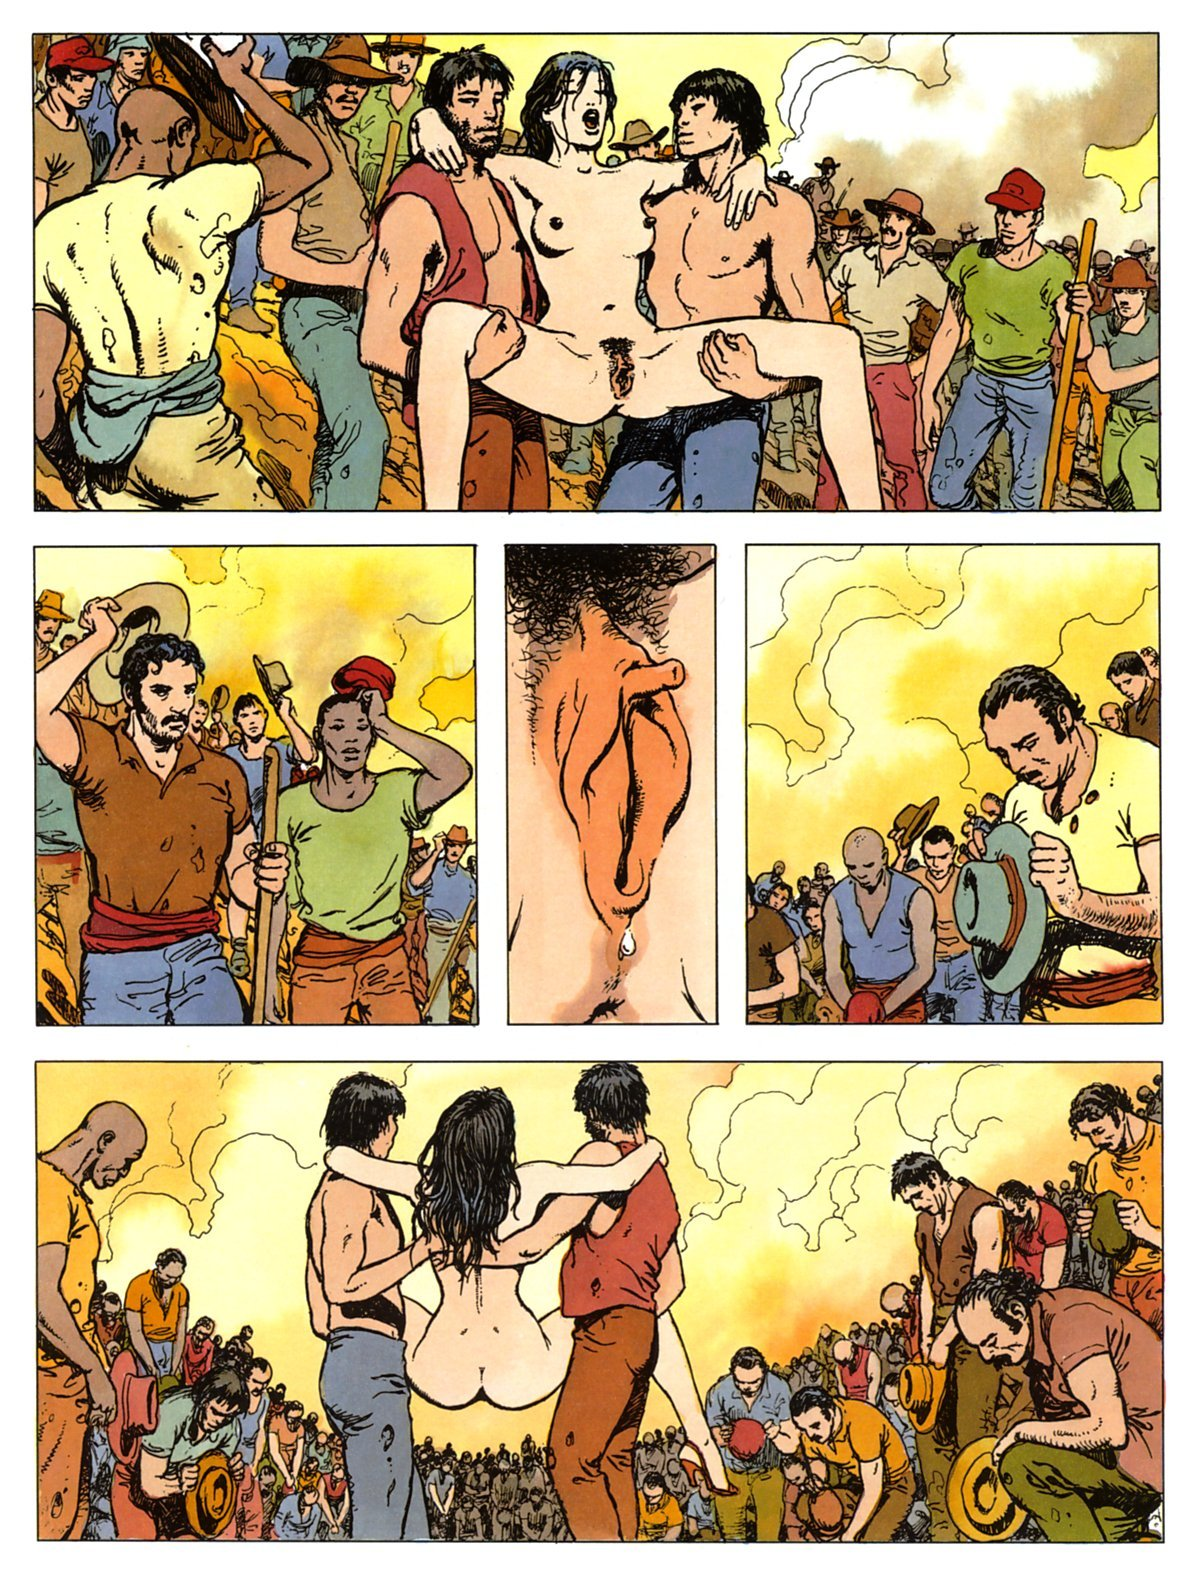 Black dicks tamil sex comics images view wife comic dafnie